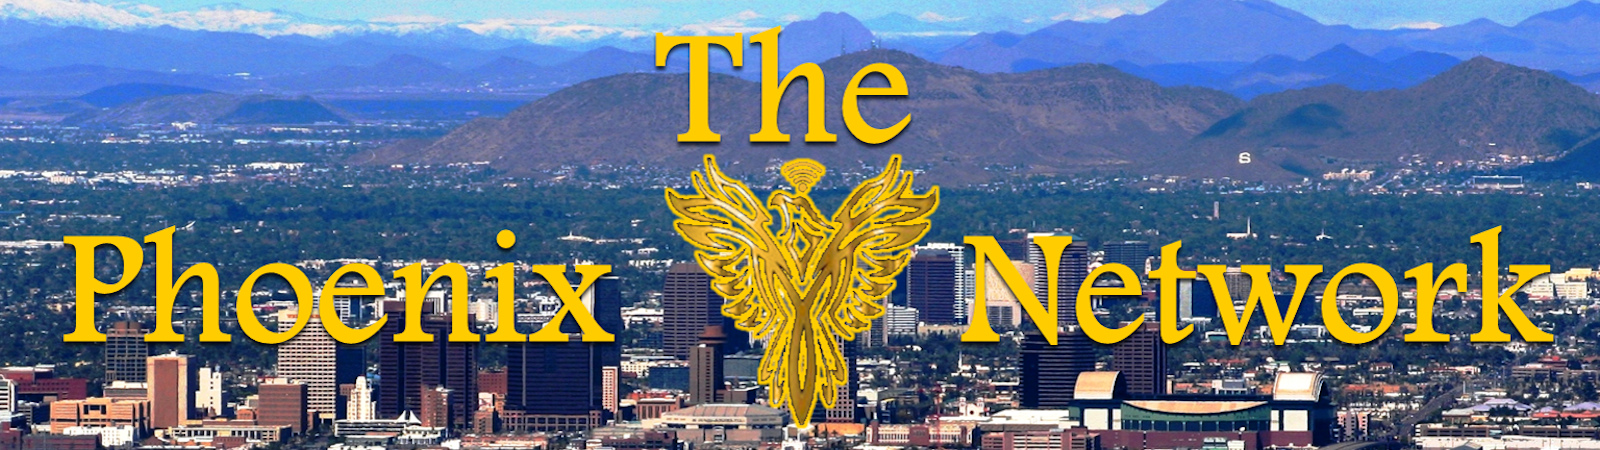 The Phoenix Network html banner semi-final